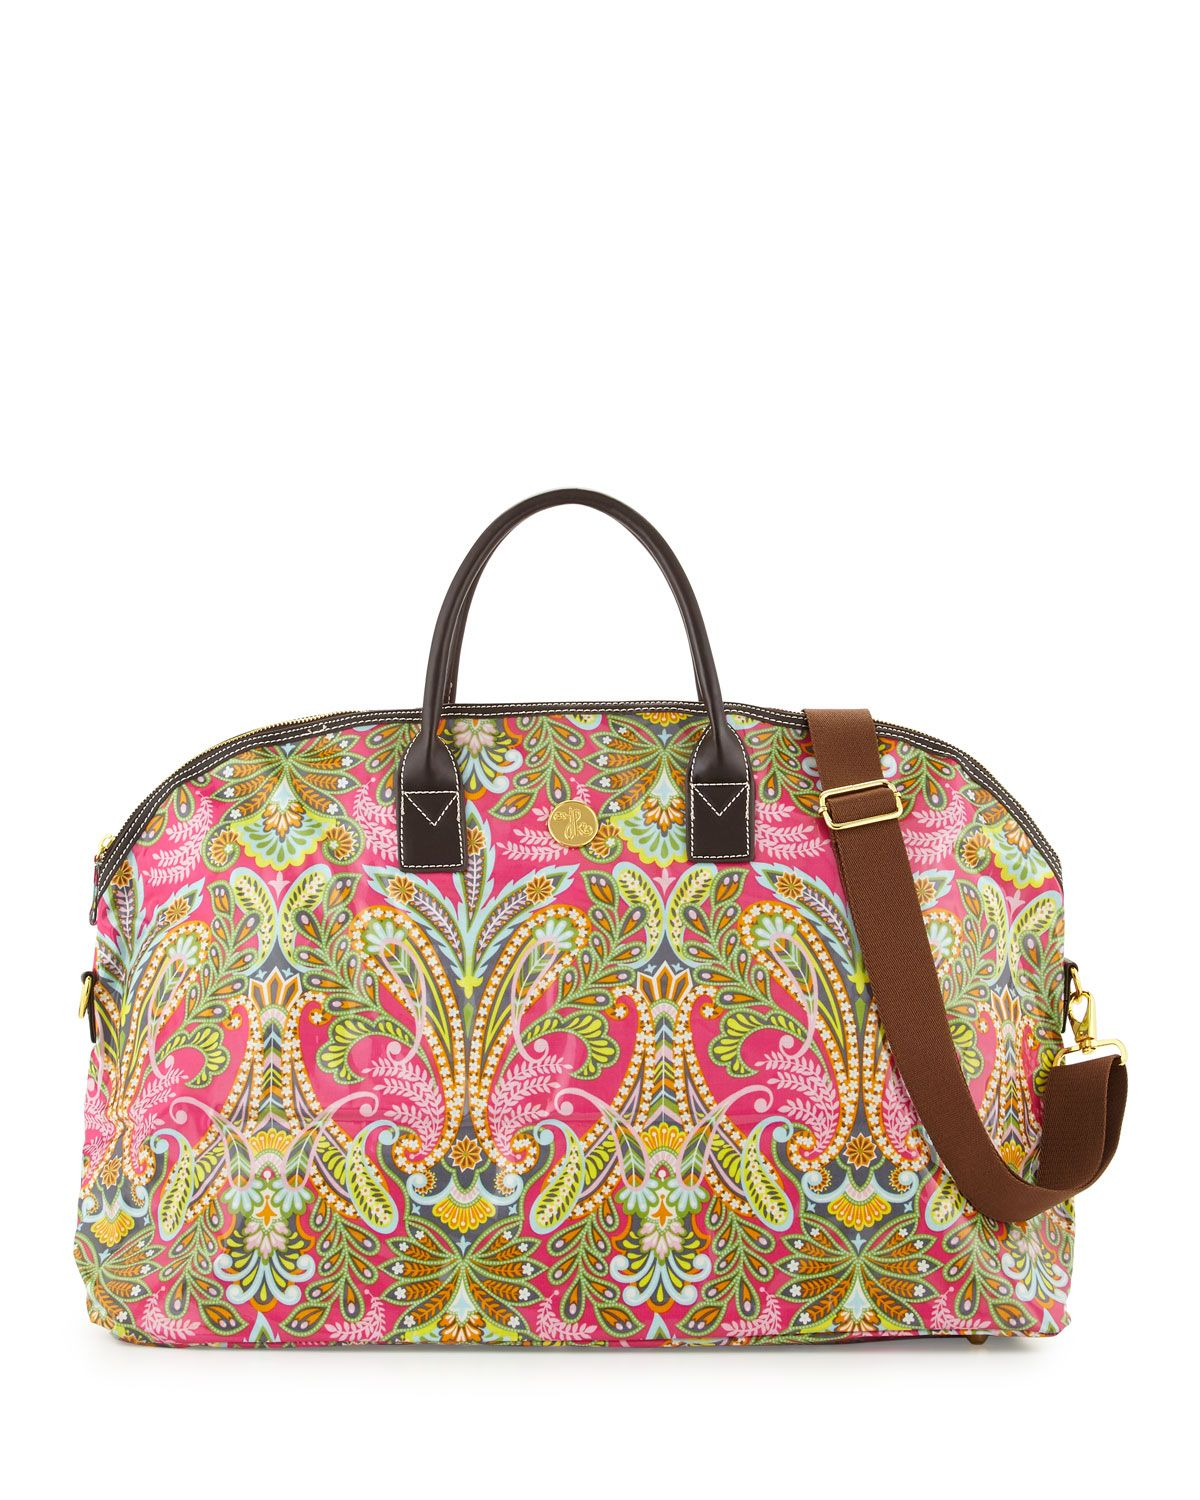 ccf8046f3c95 Anna Griffin Printed Large Duffle Bag